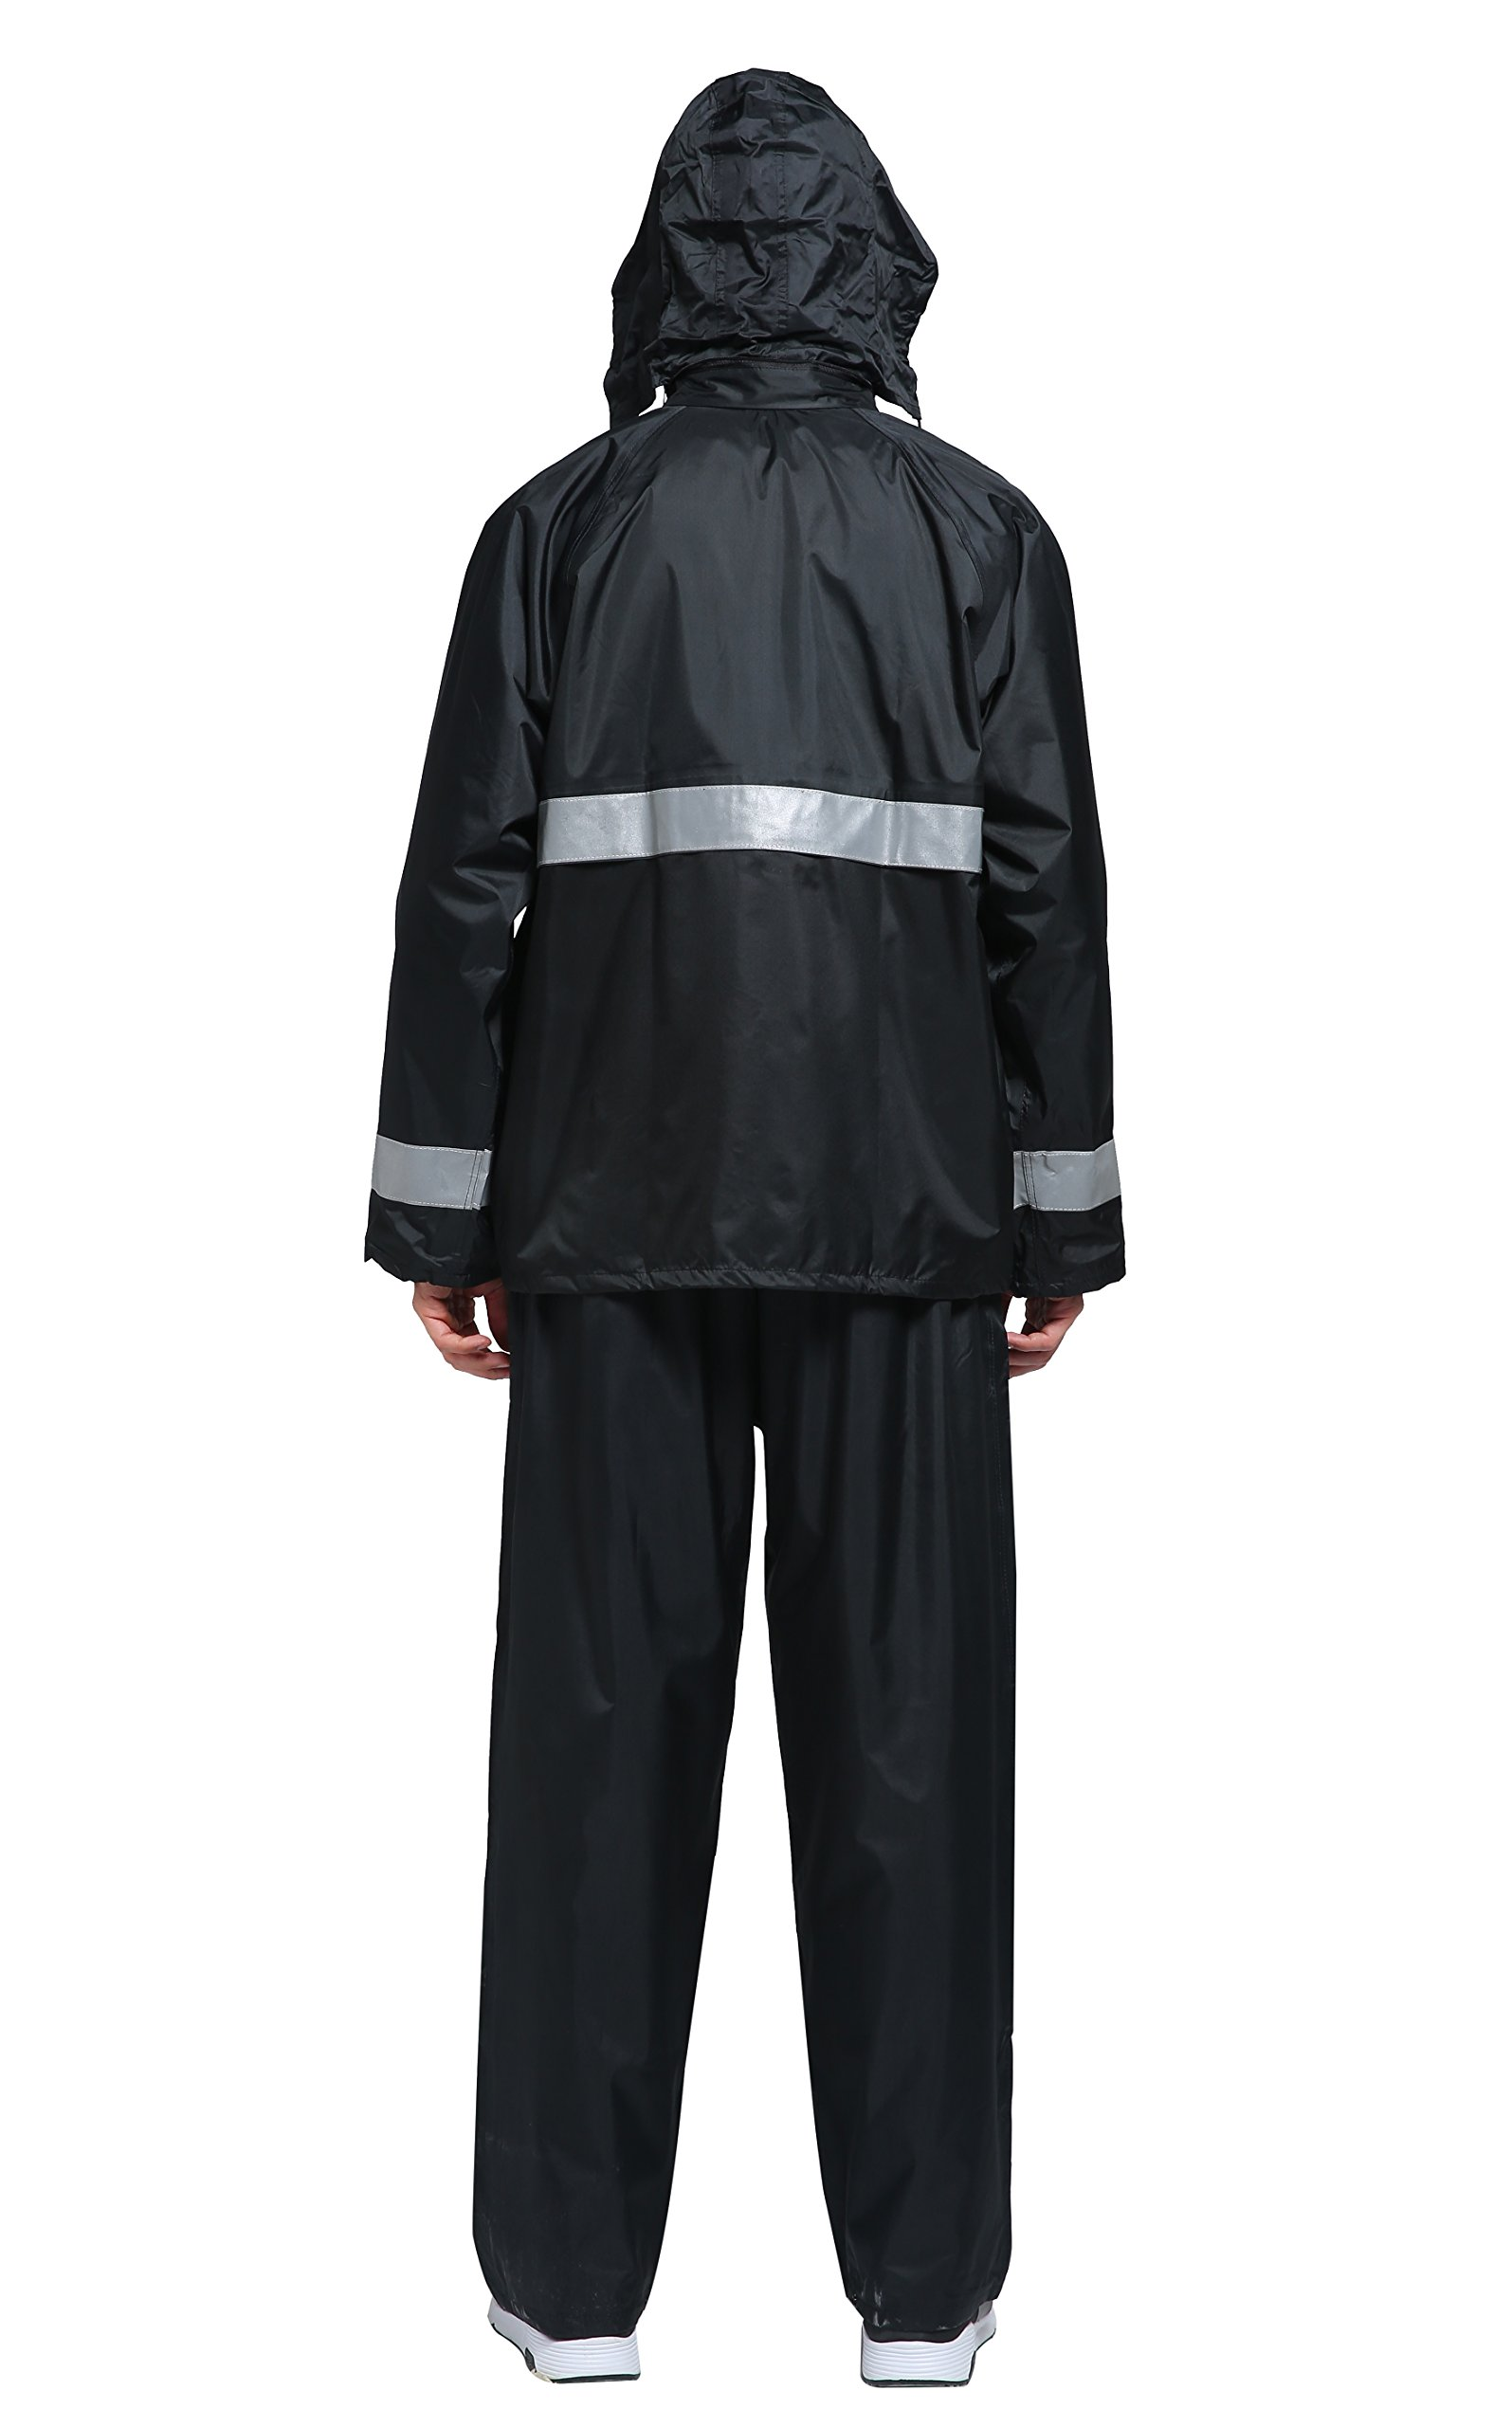 Maiyu Motorcycle Rain Suit Waterproof Rain Jacket and Pants Set 2 Piece Rain Gear For Adult by Maiyu (Image #3)